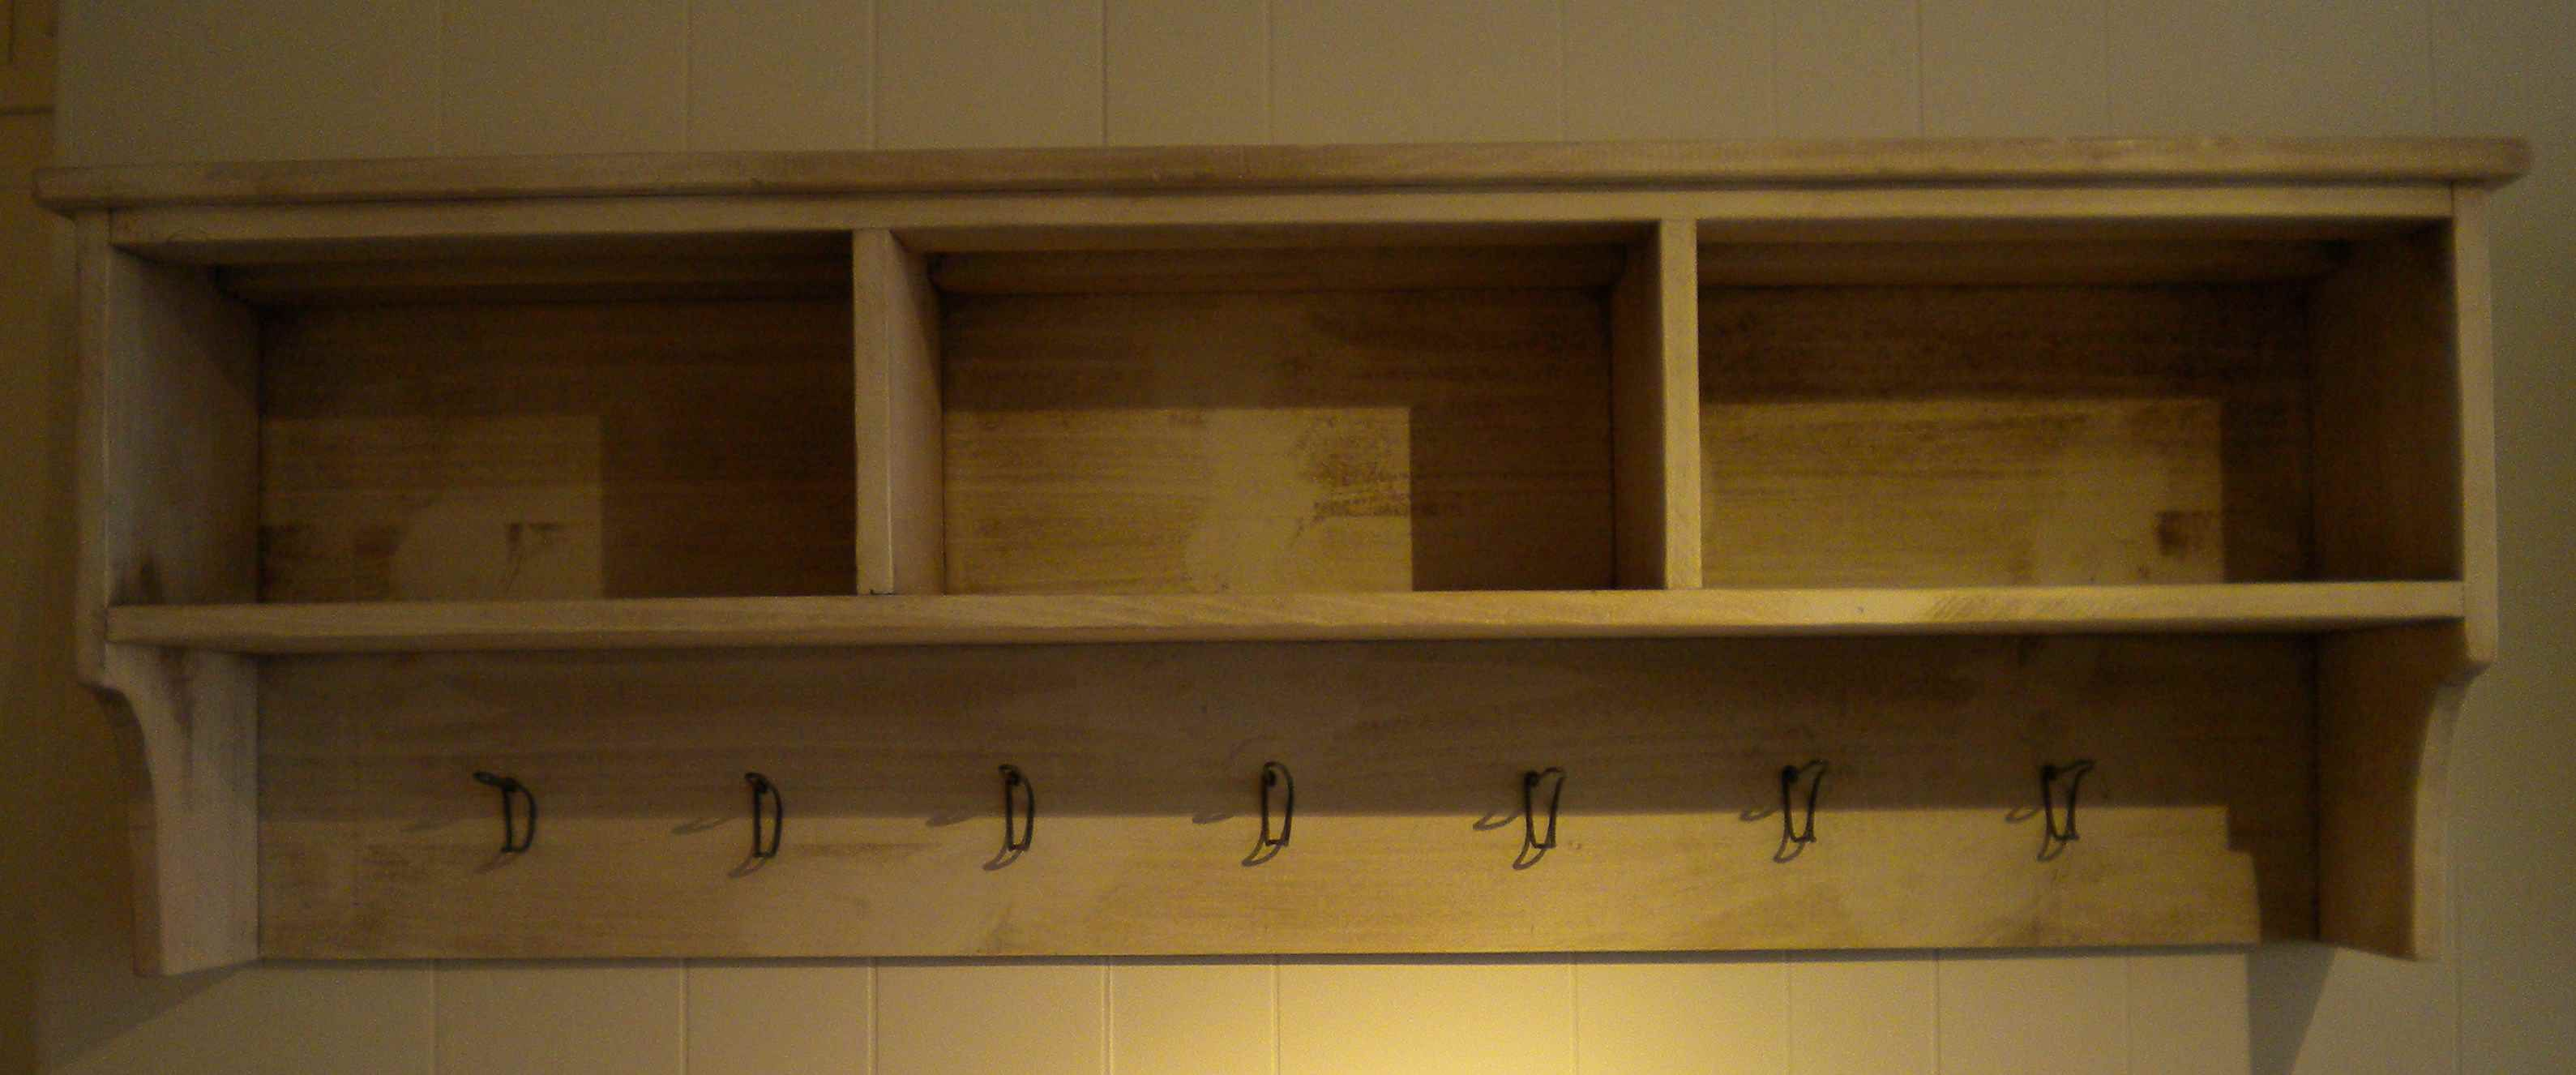 Cubby, Shelf, Coat Hooks